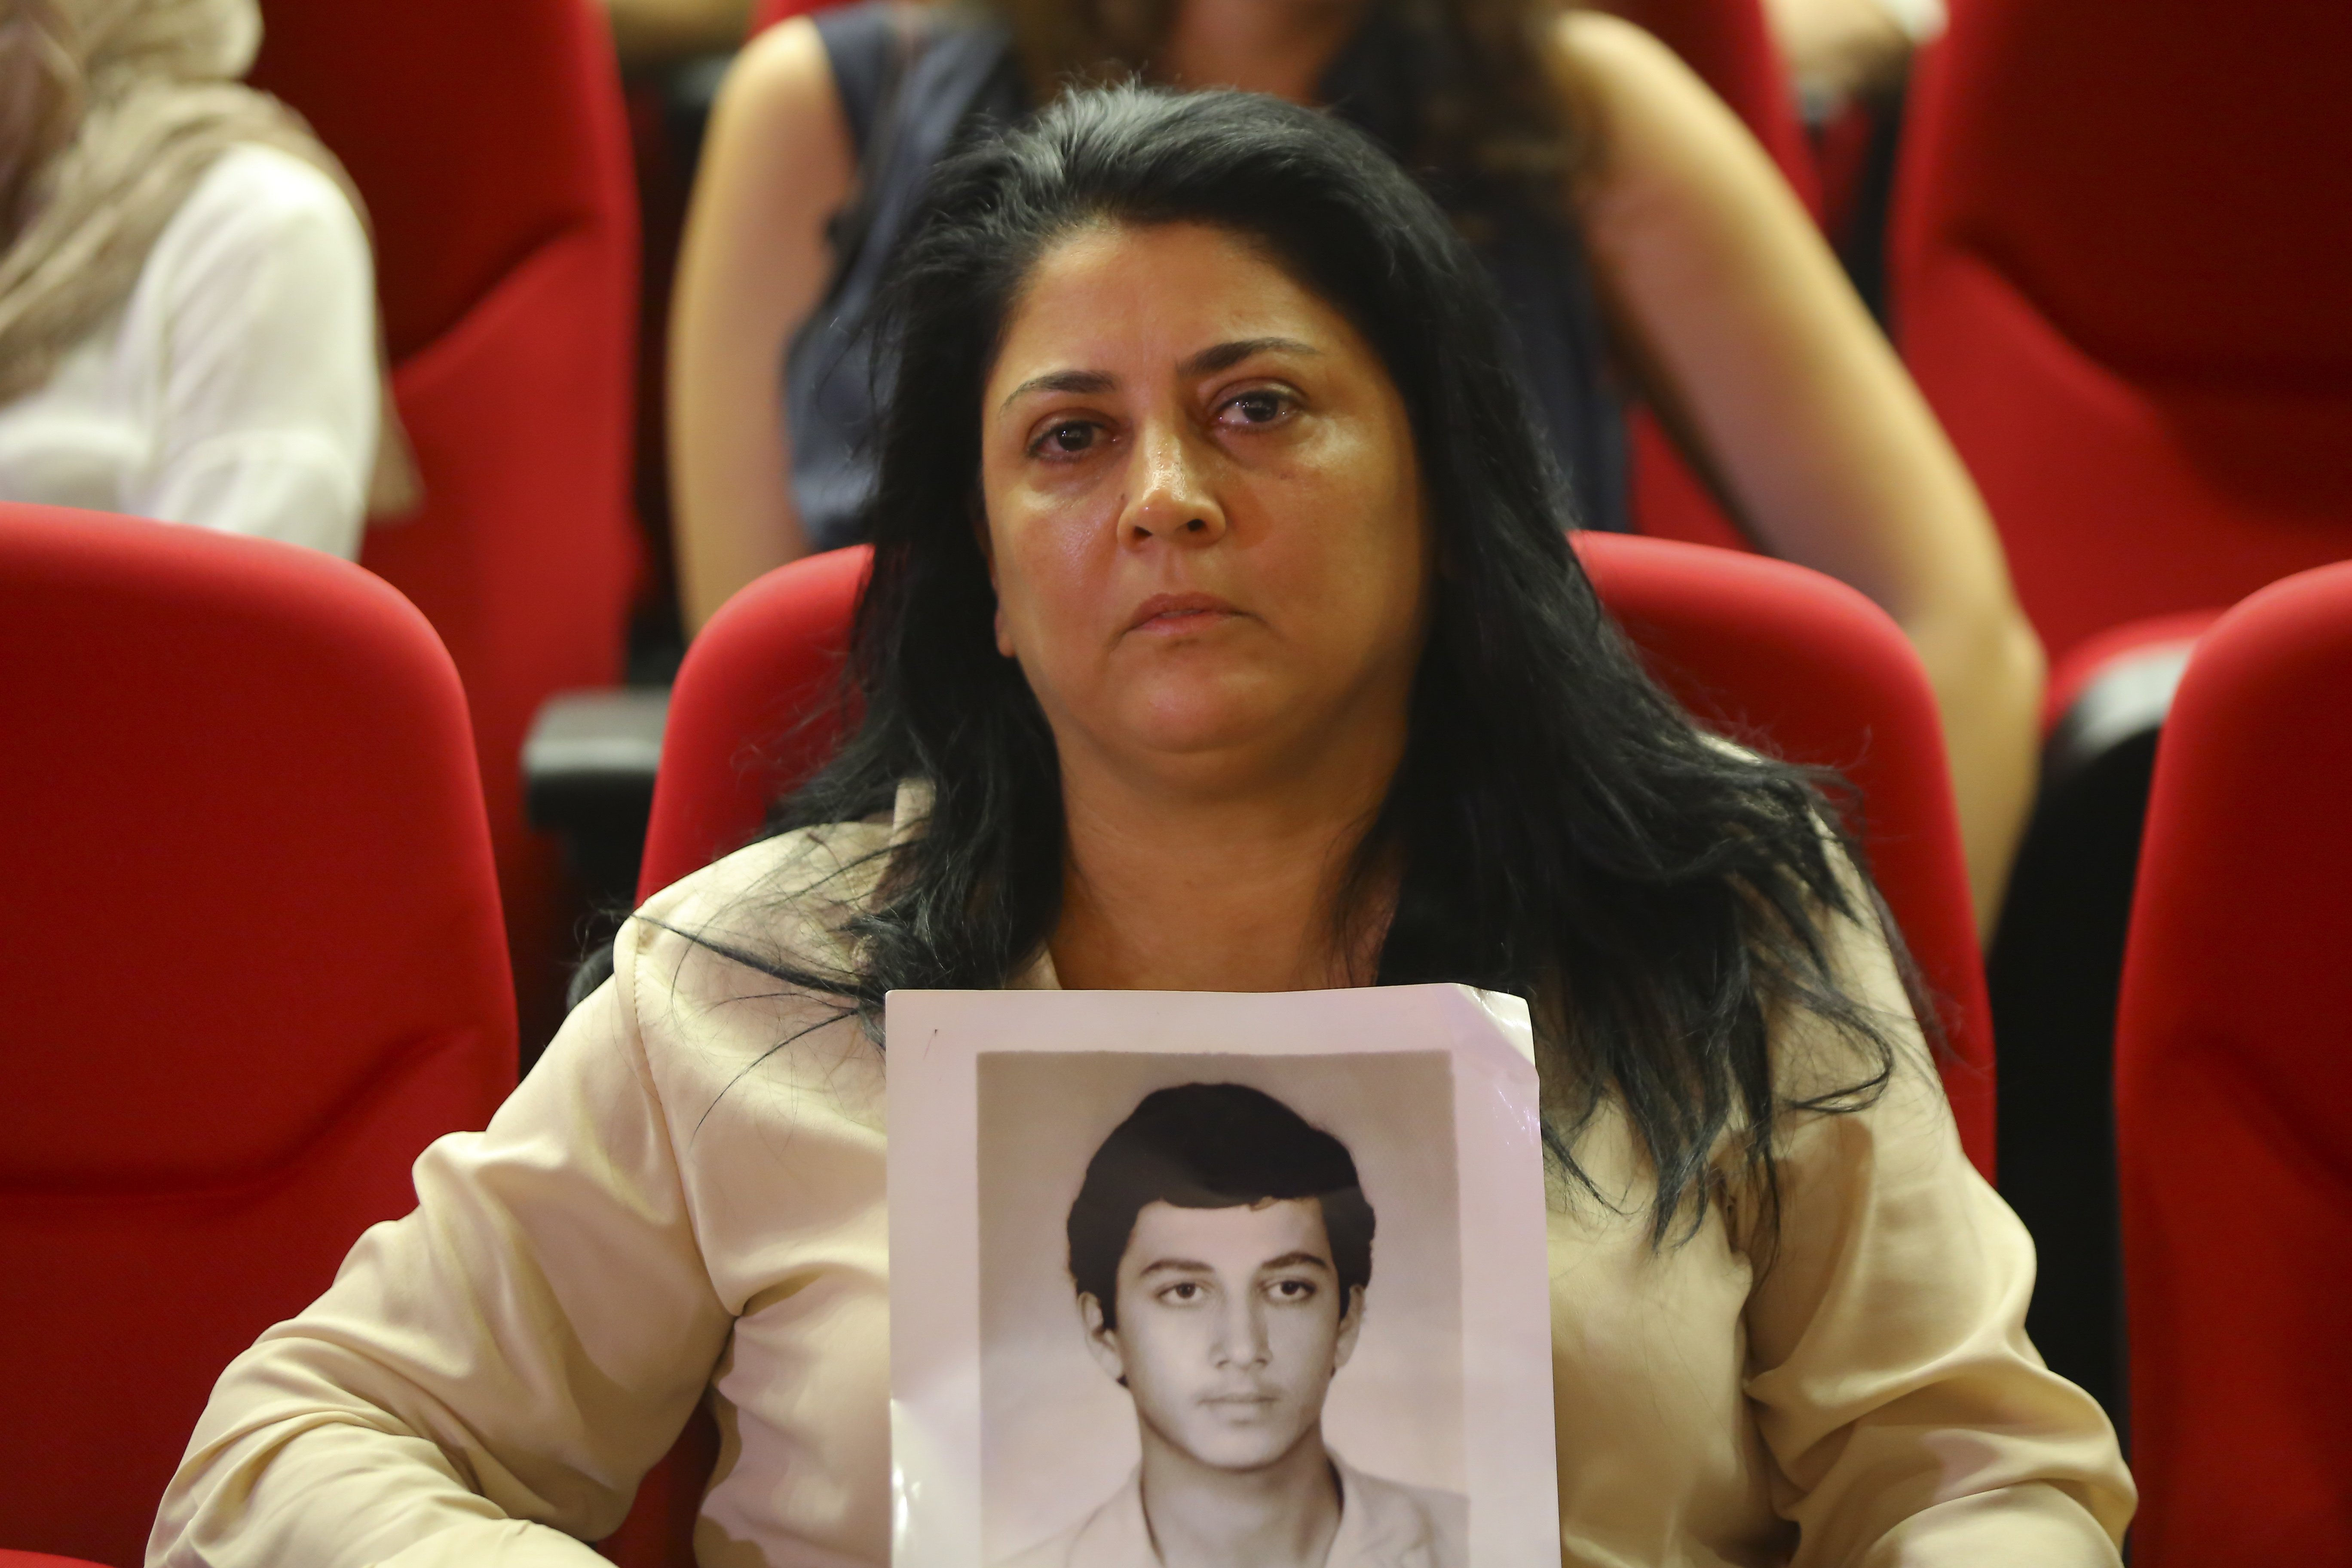 A woman holds up a photograph of her missing adult son.